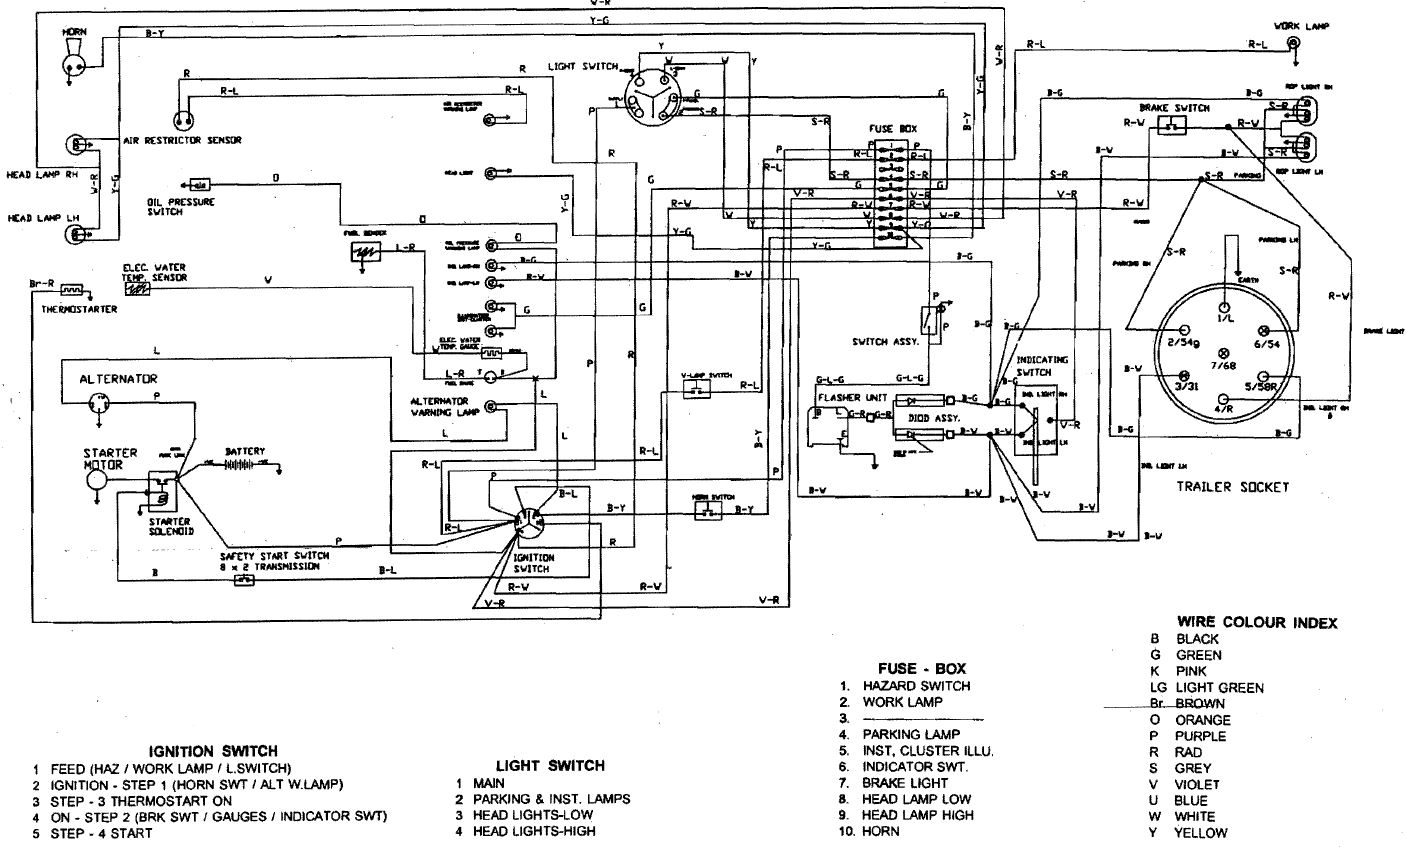 20158463319_b82d524c3d_o ignition switch wiring diagram Trailer Wiring Diagram at eliteediting.co